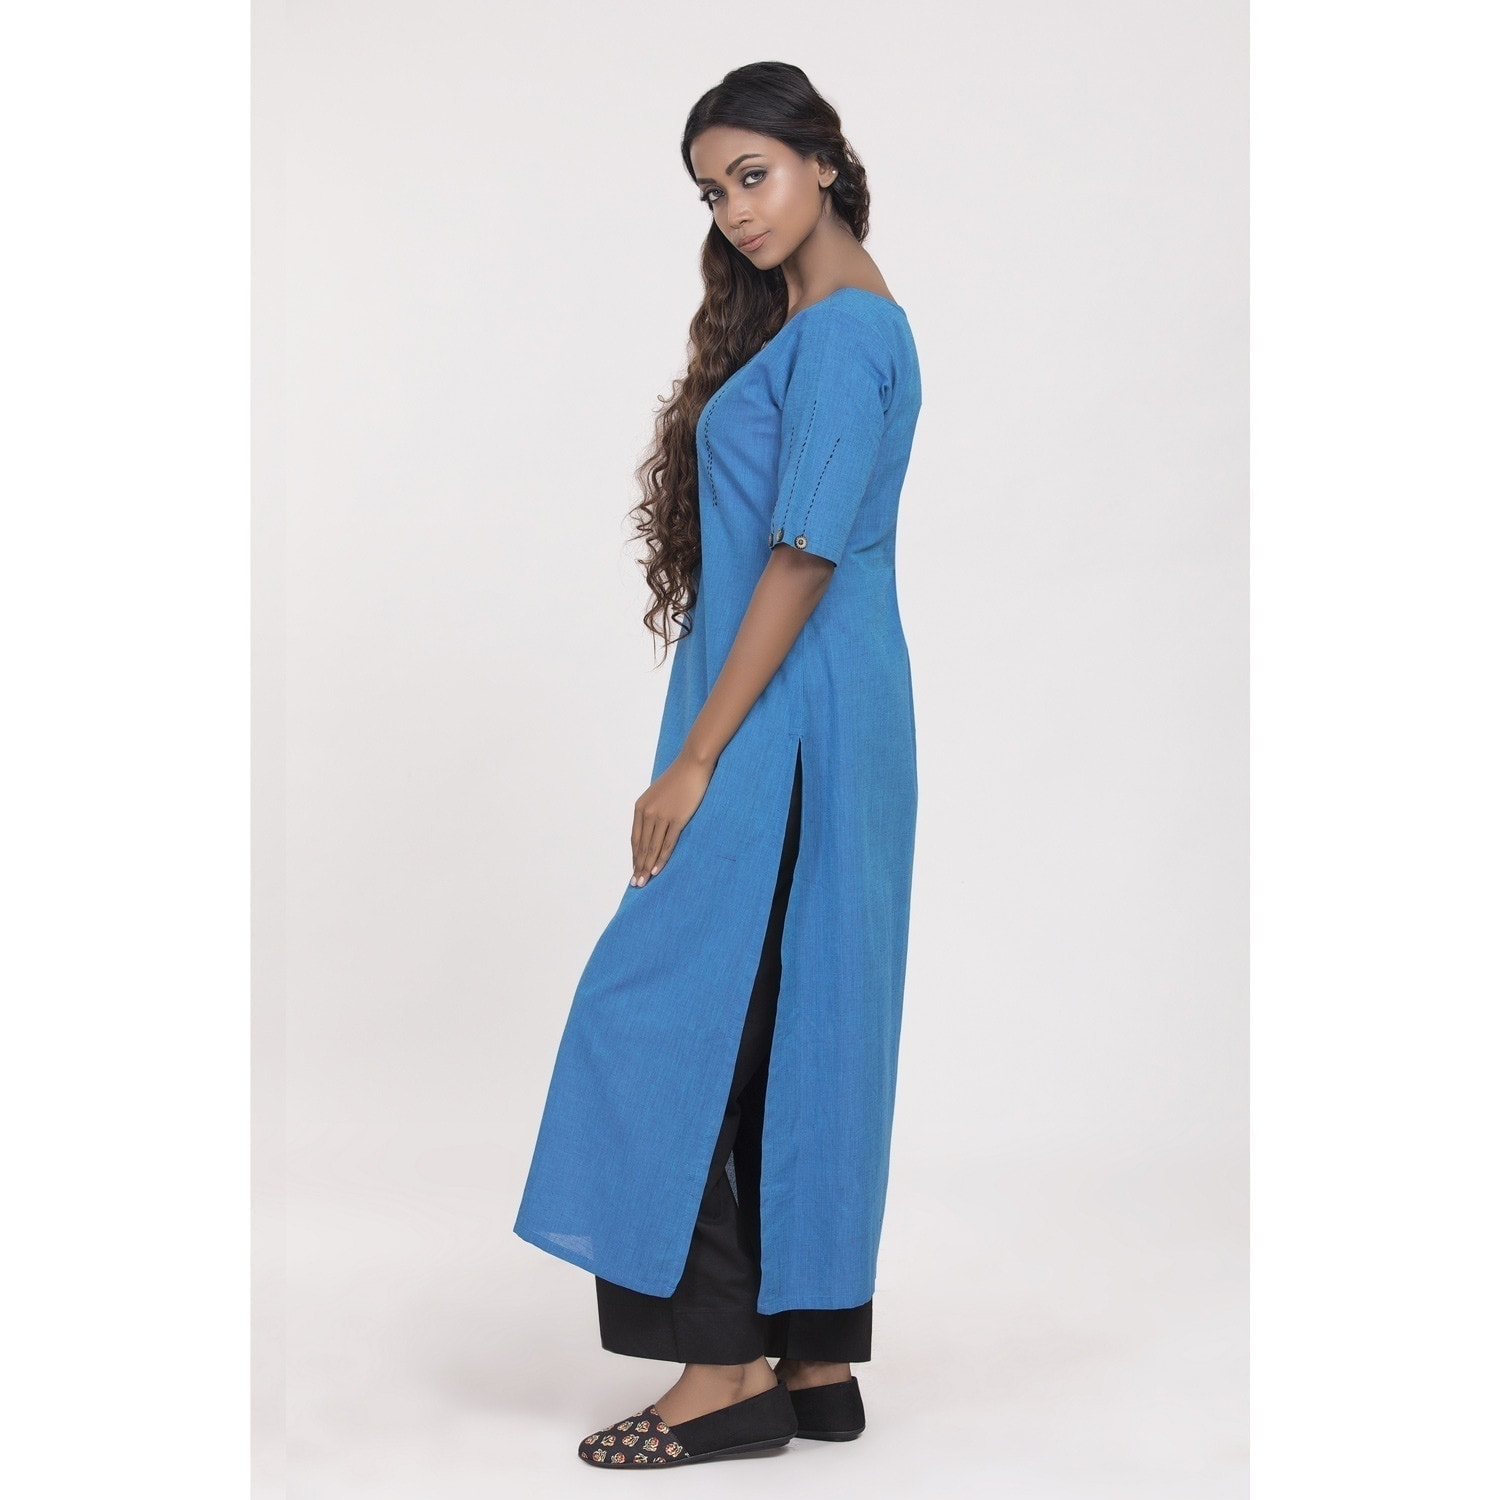 South cotton blue kurta